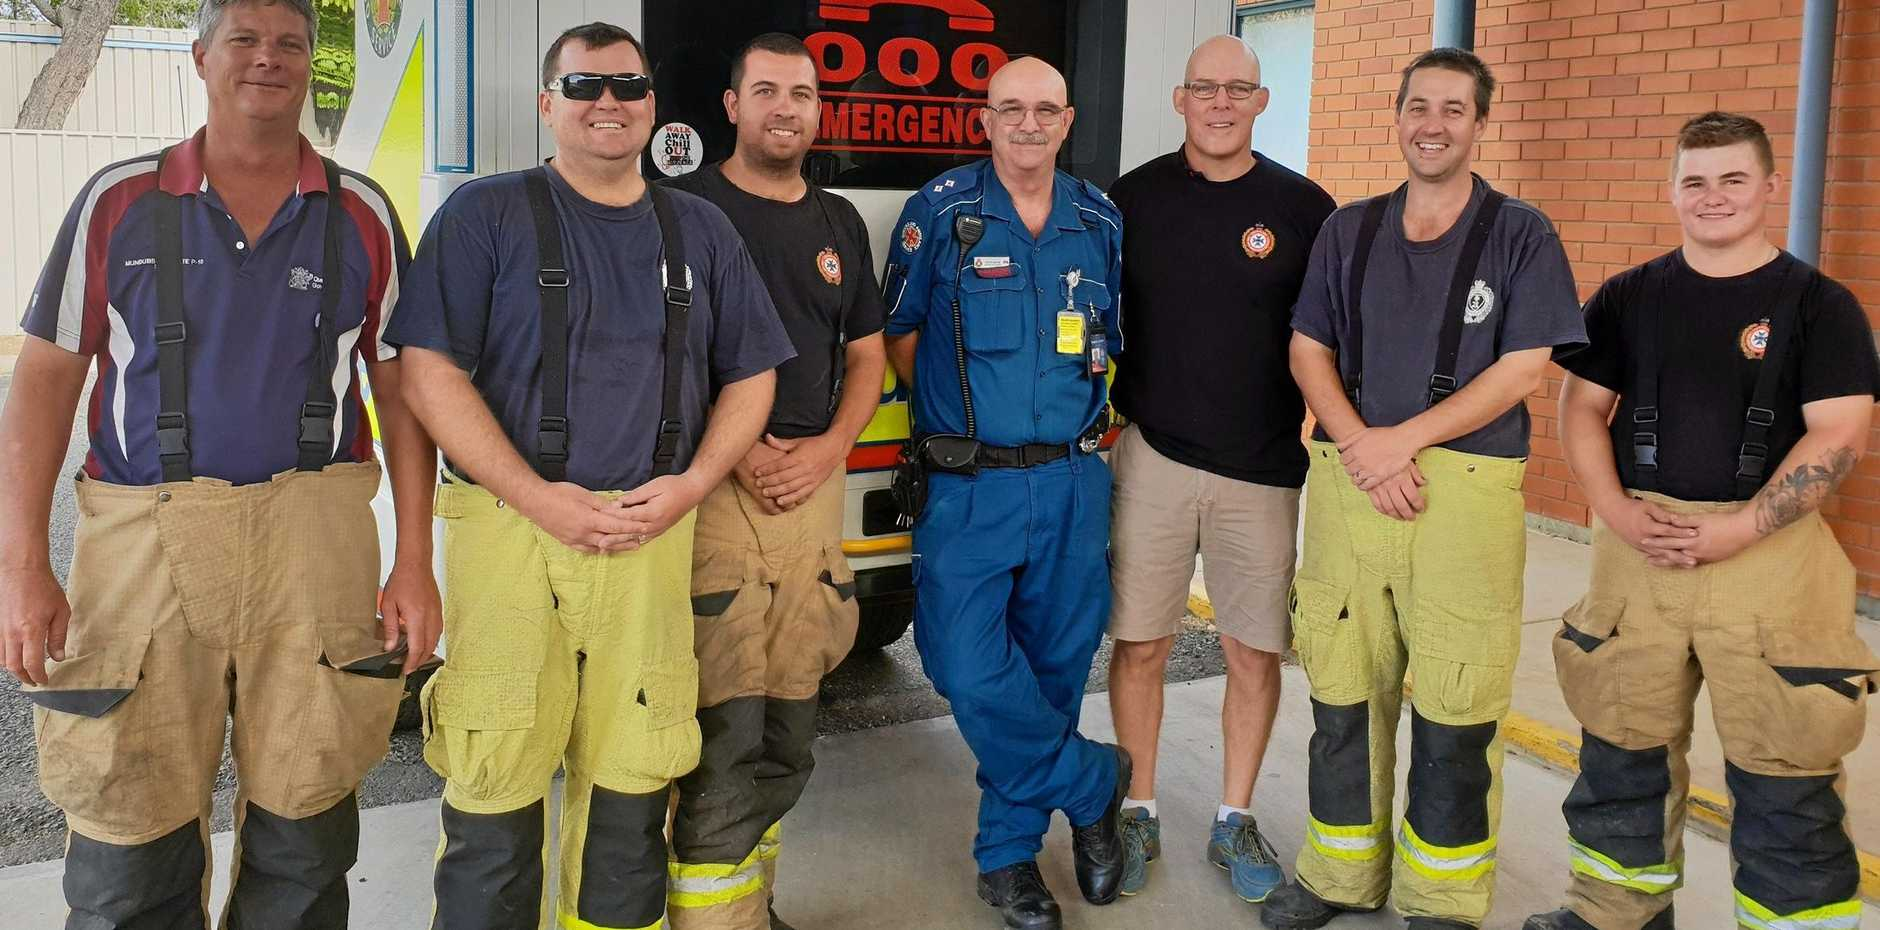 THANKS: Mundubbera paramedic Steve Smith is proud of the relationships QAS formed with other emergency services during his tenure.